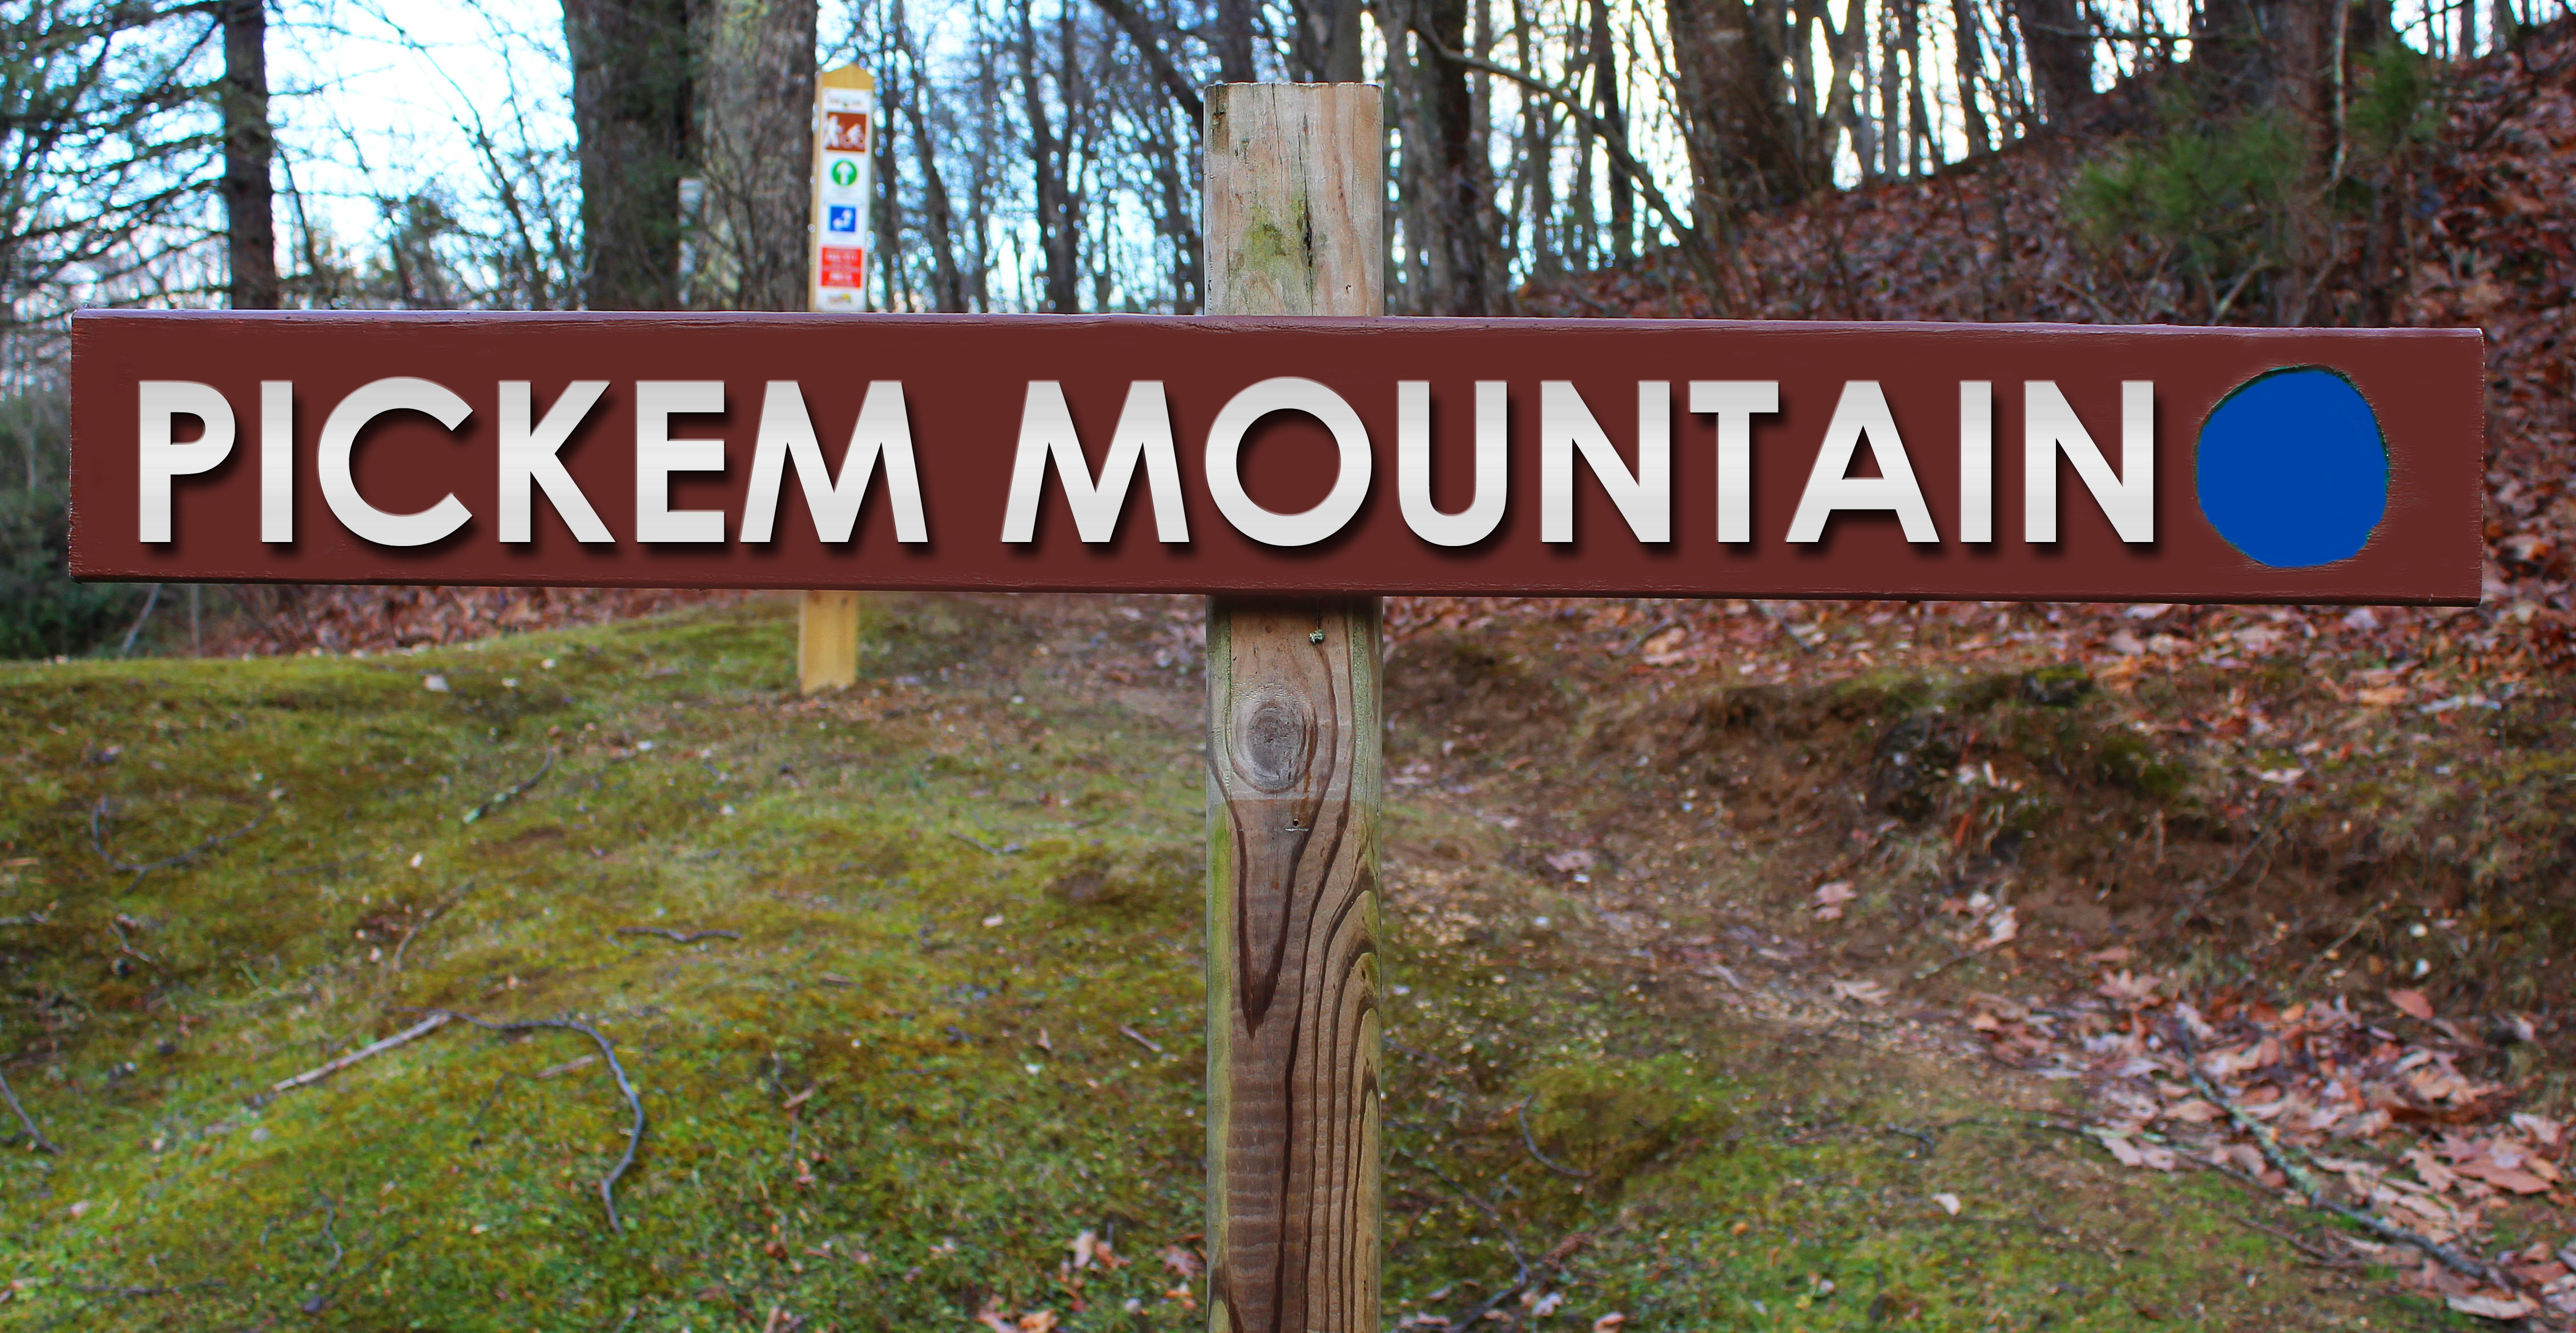 Picture of Pickem Mountain trail sign